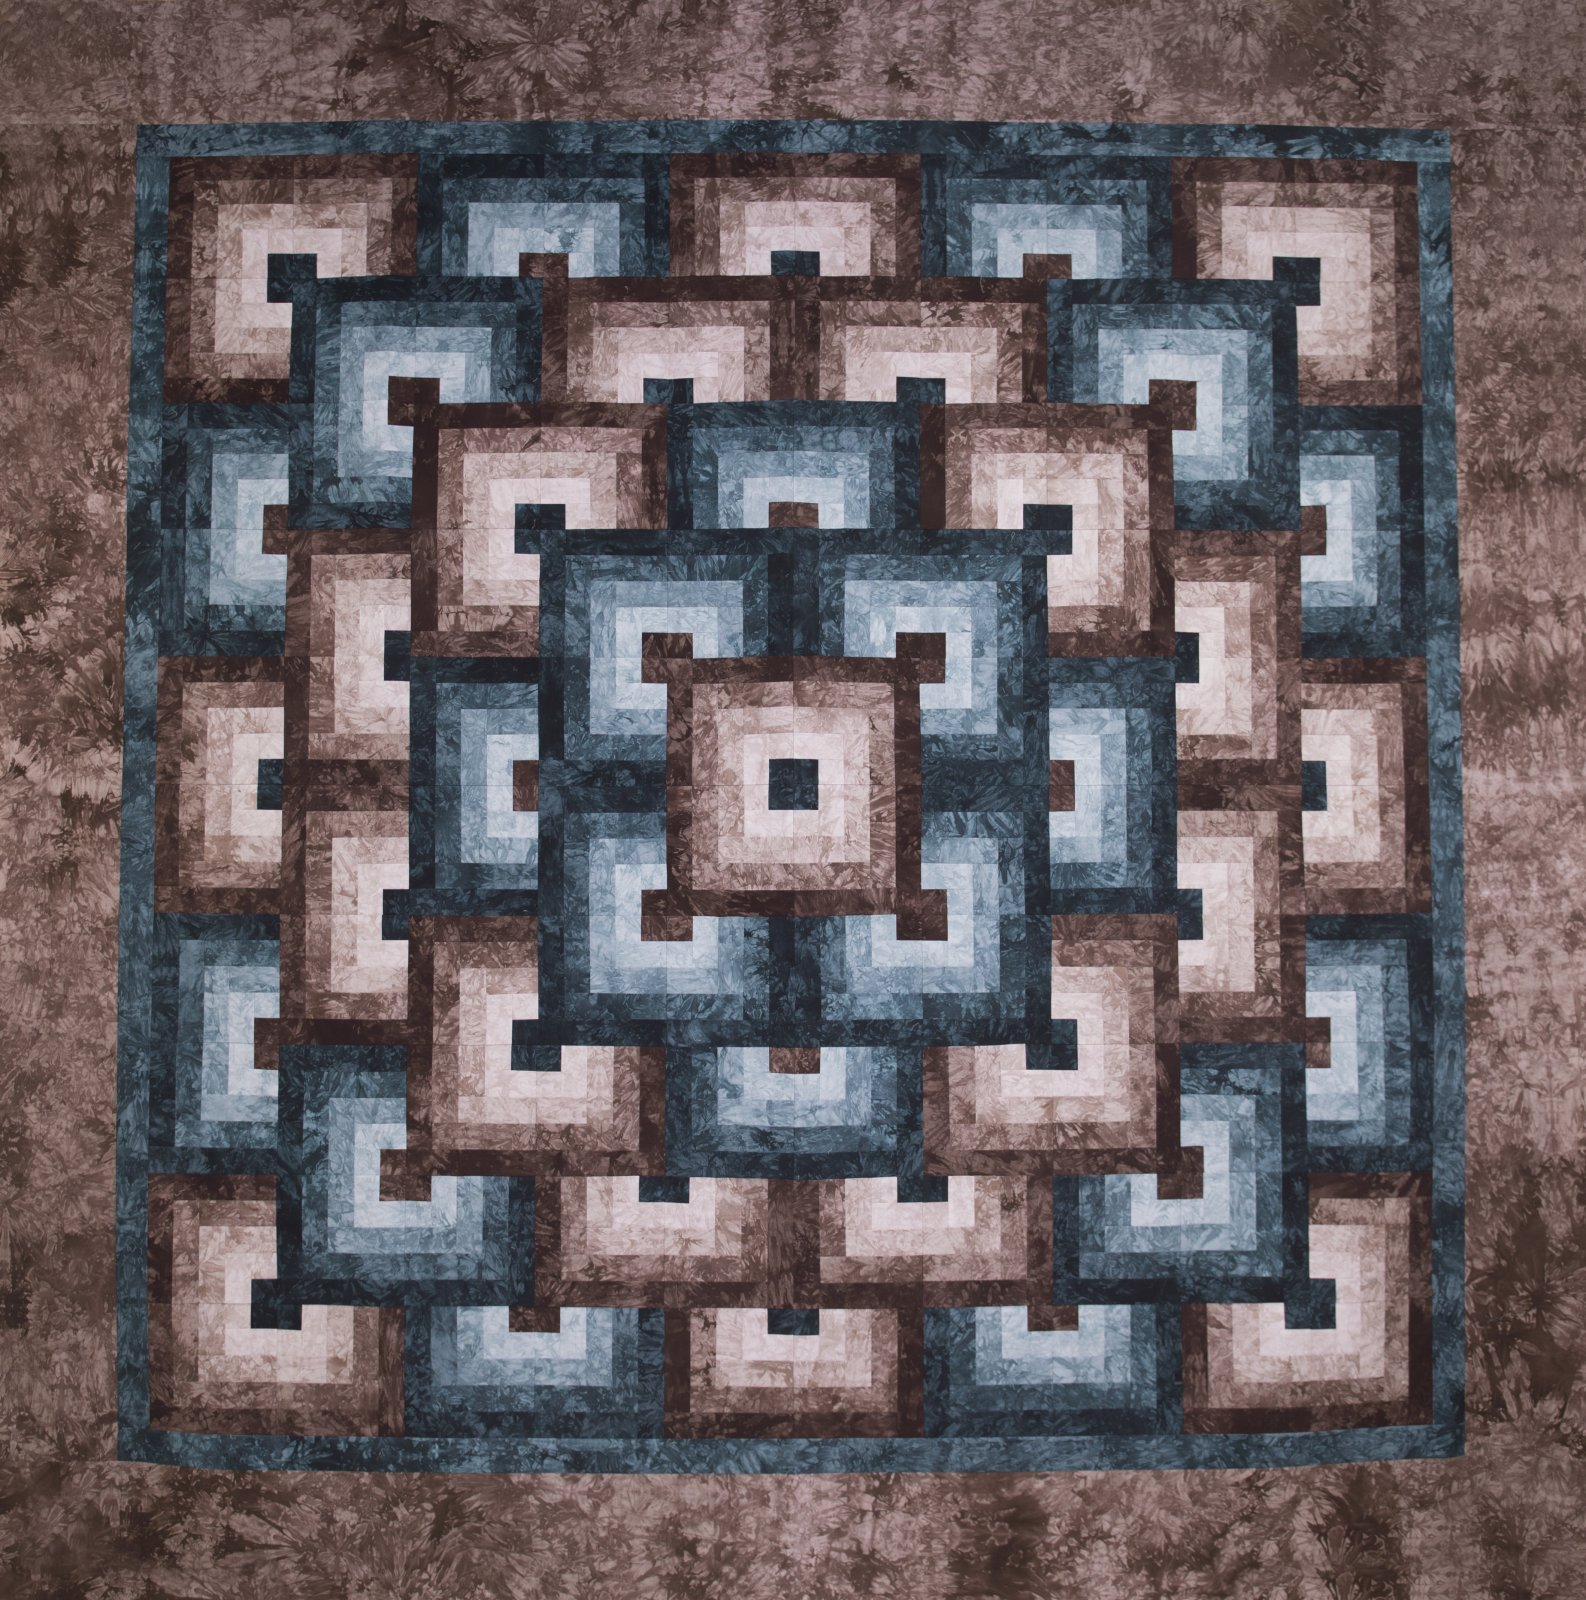 Calmly Queen Size Quilt Illusions Quilt Kit Queen Size Quilt Kits Queen Size Quilt Patterns Queen Size Quilt Batting houzz-03 Queen Size Quilt